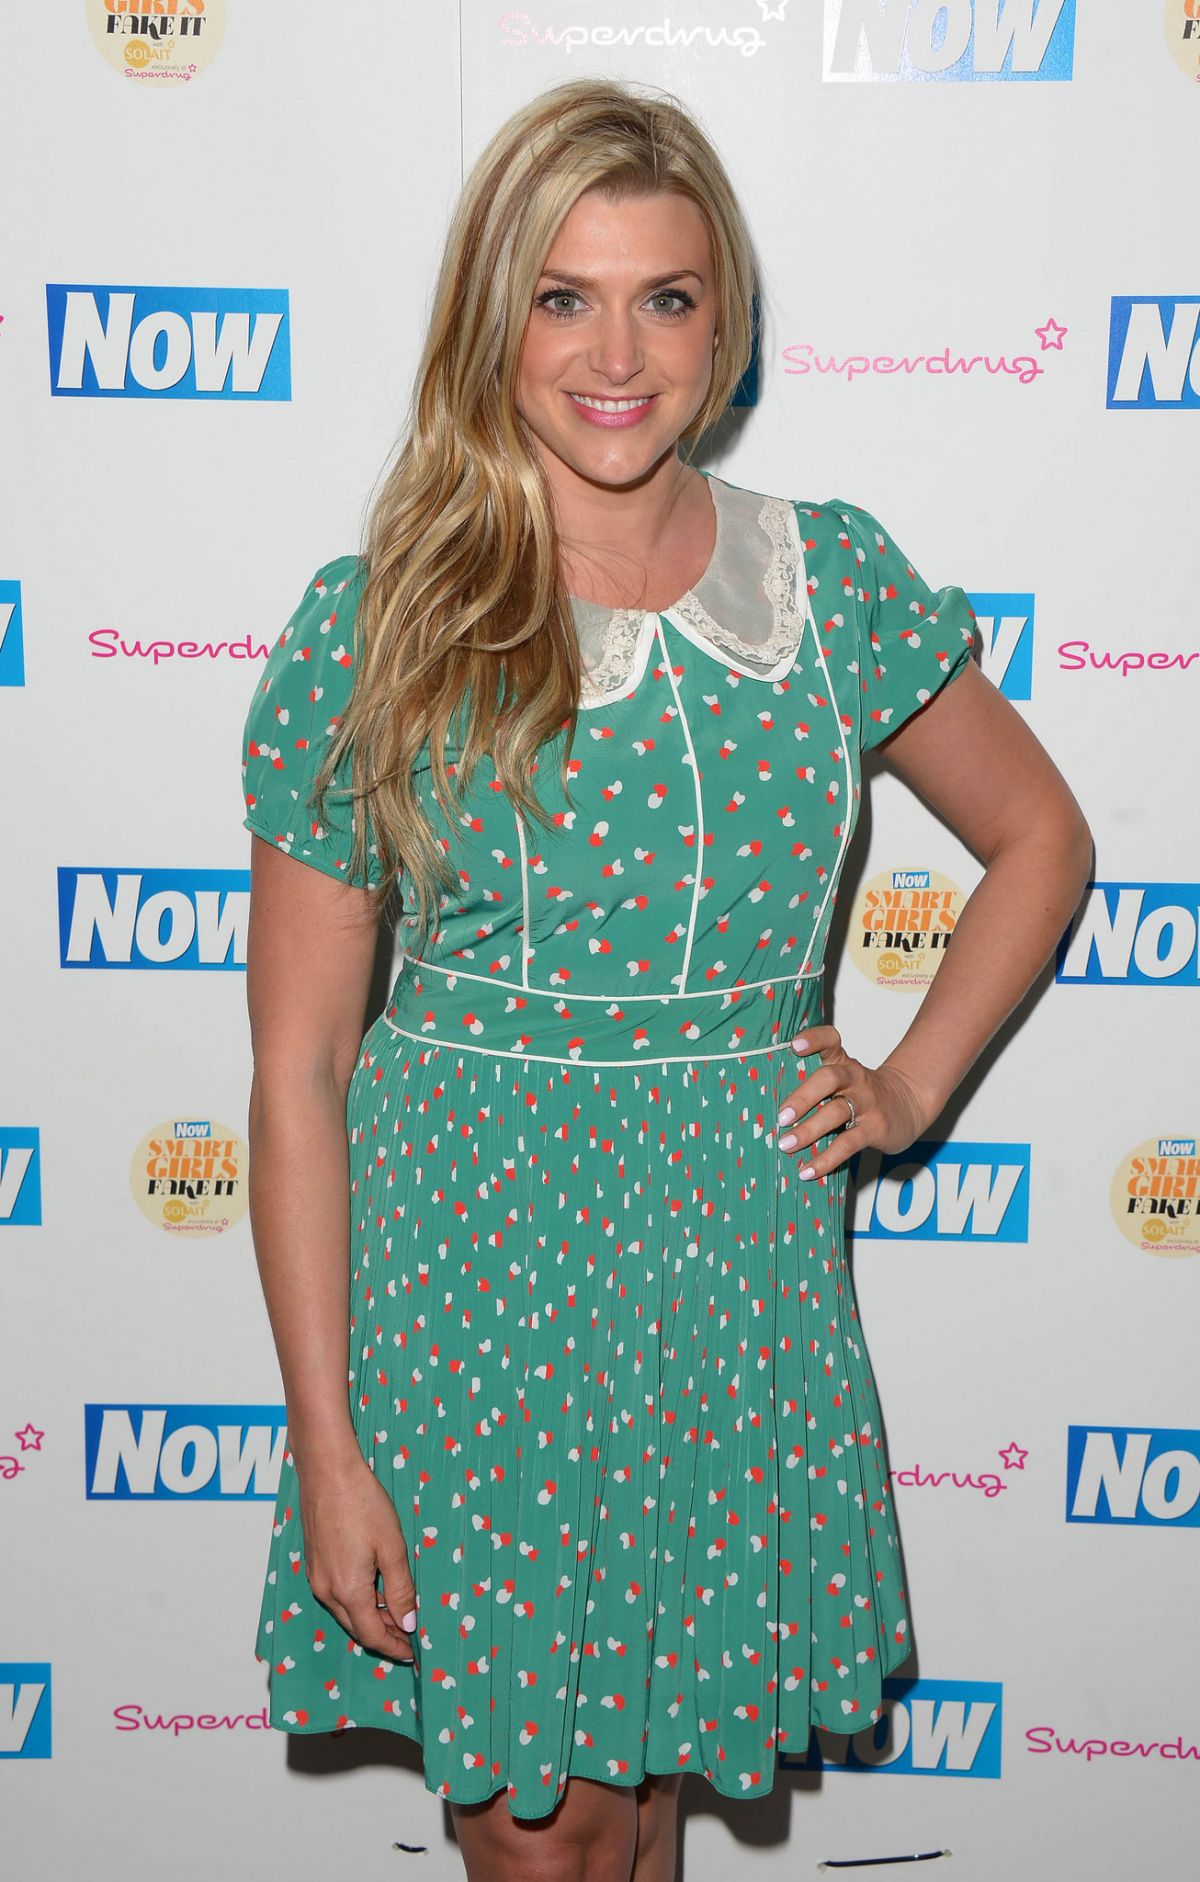 ANNA WILLIAMSON at Now Smart Girls Fake it Campaign with Superdrug Solait Launch Party in London